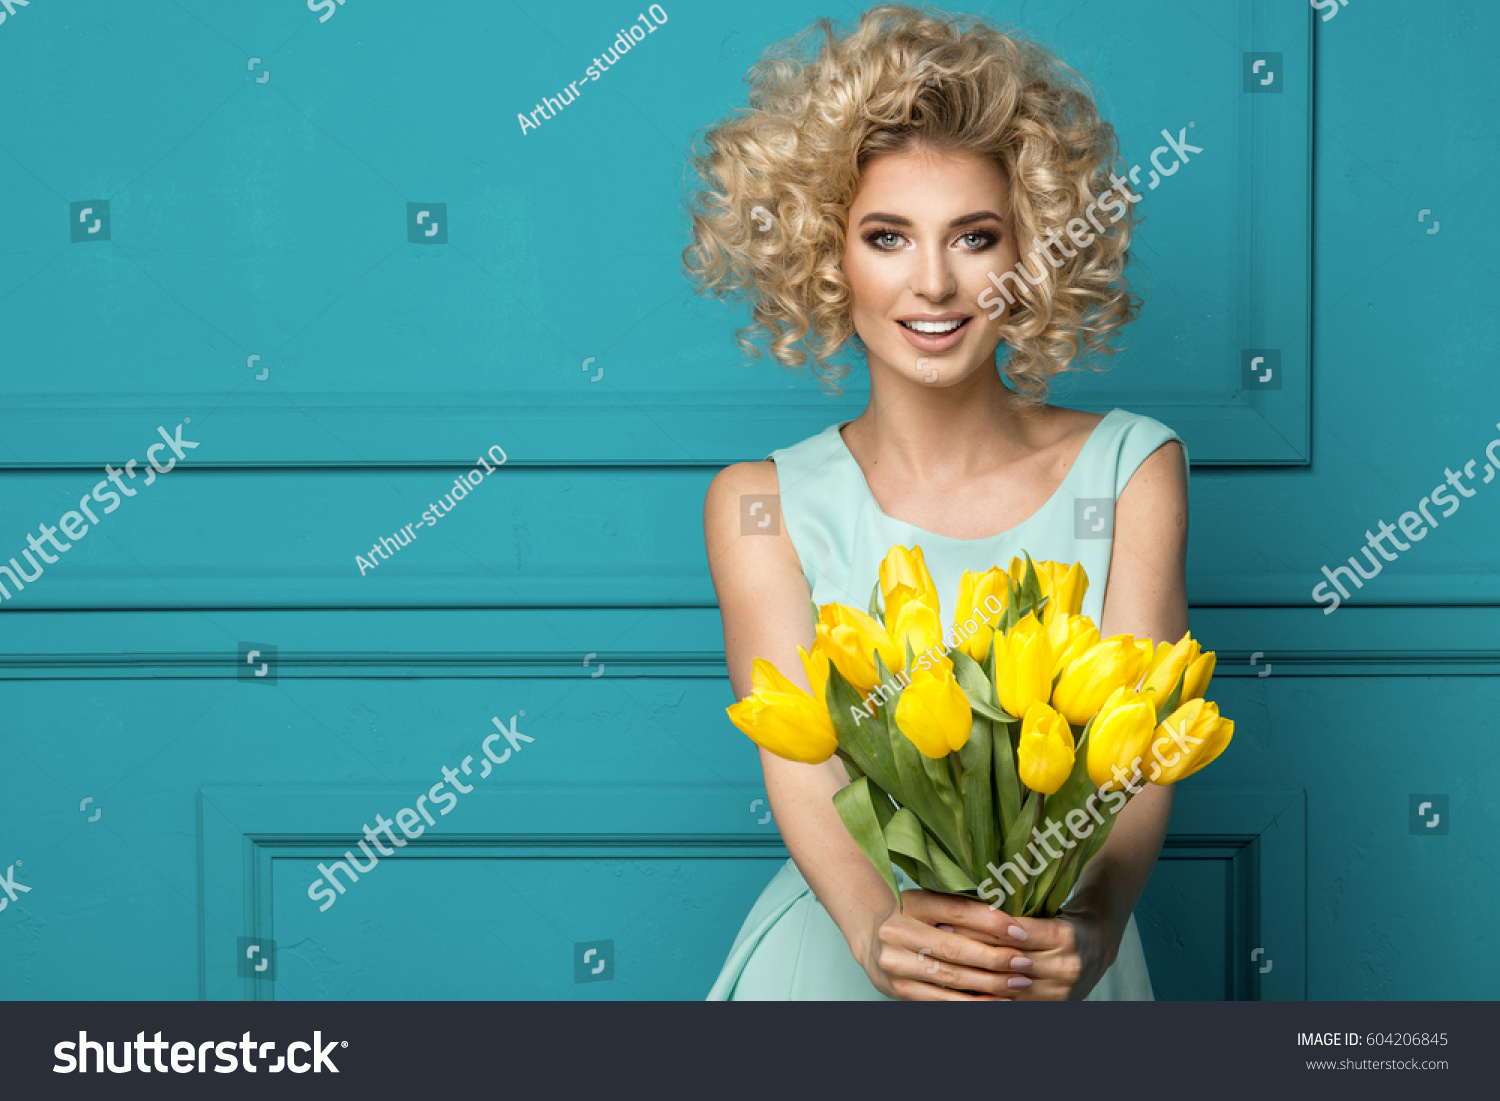 Beautiful Blonde Girl Blue Dress Flowers Stock Photo Royalty Free